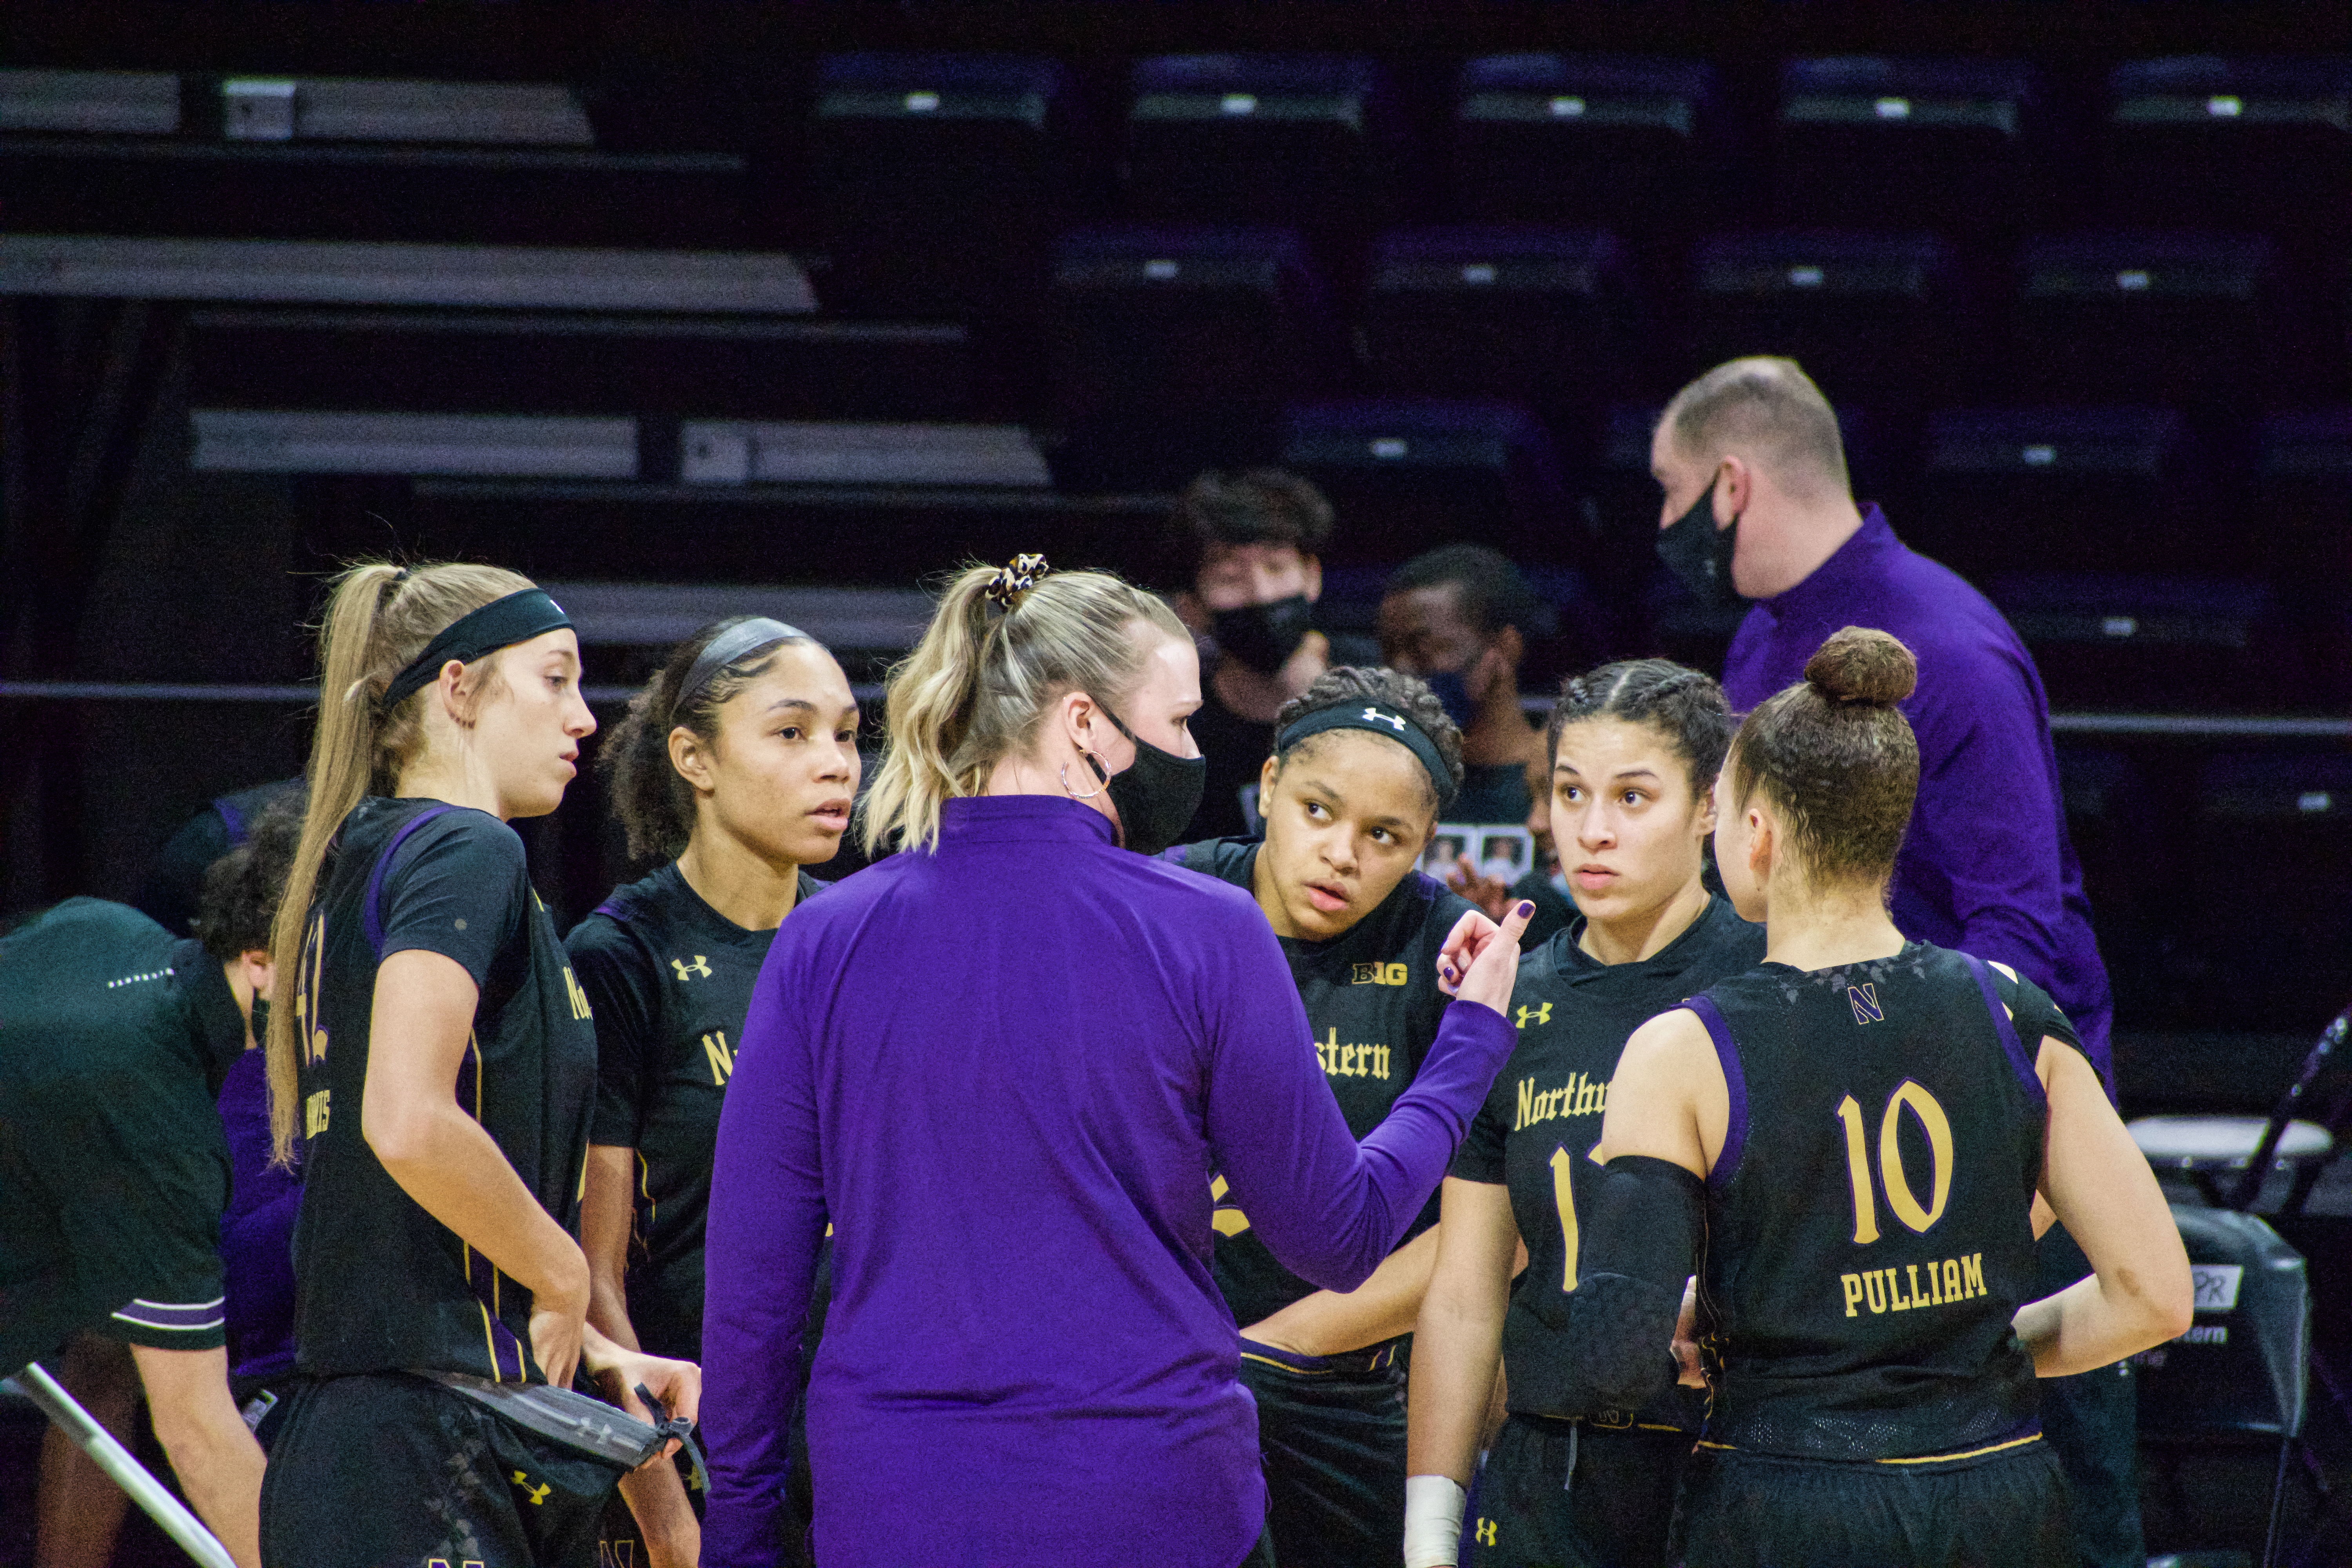 Five members of the women's basketball team, wearing black, huddle around Popovec, wearing purple with her back to the camera.